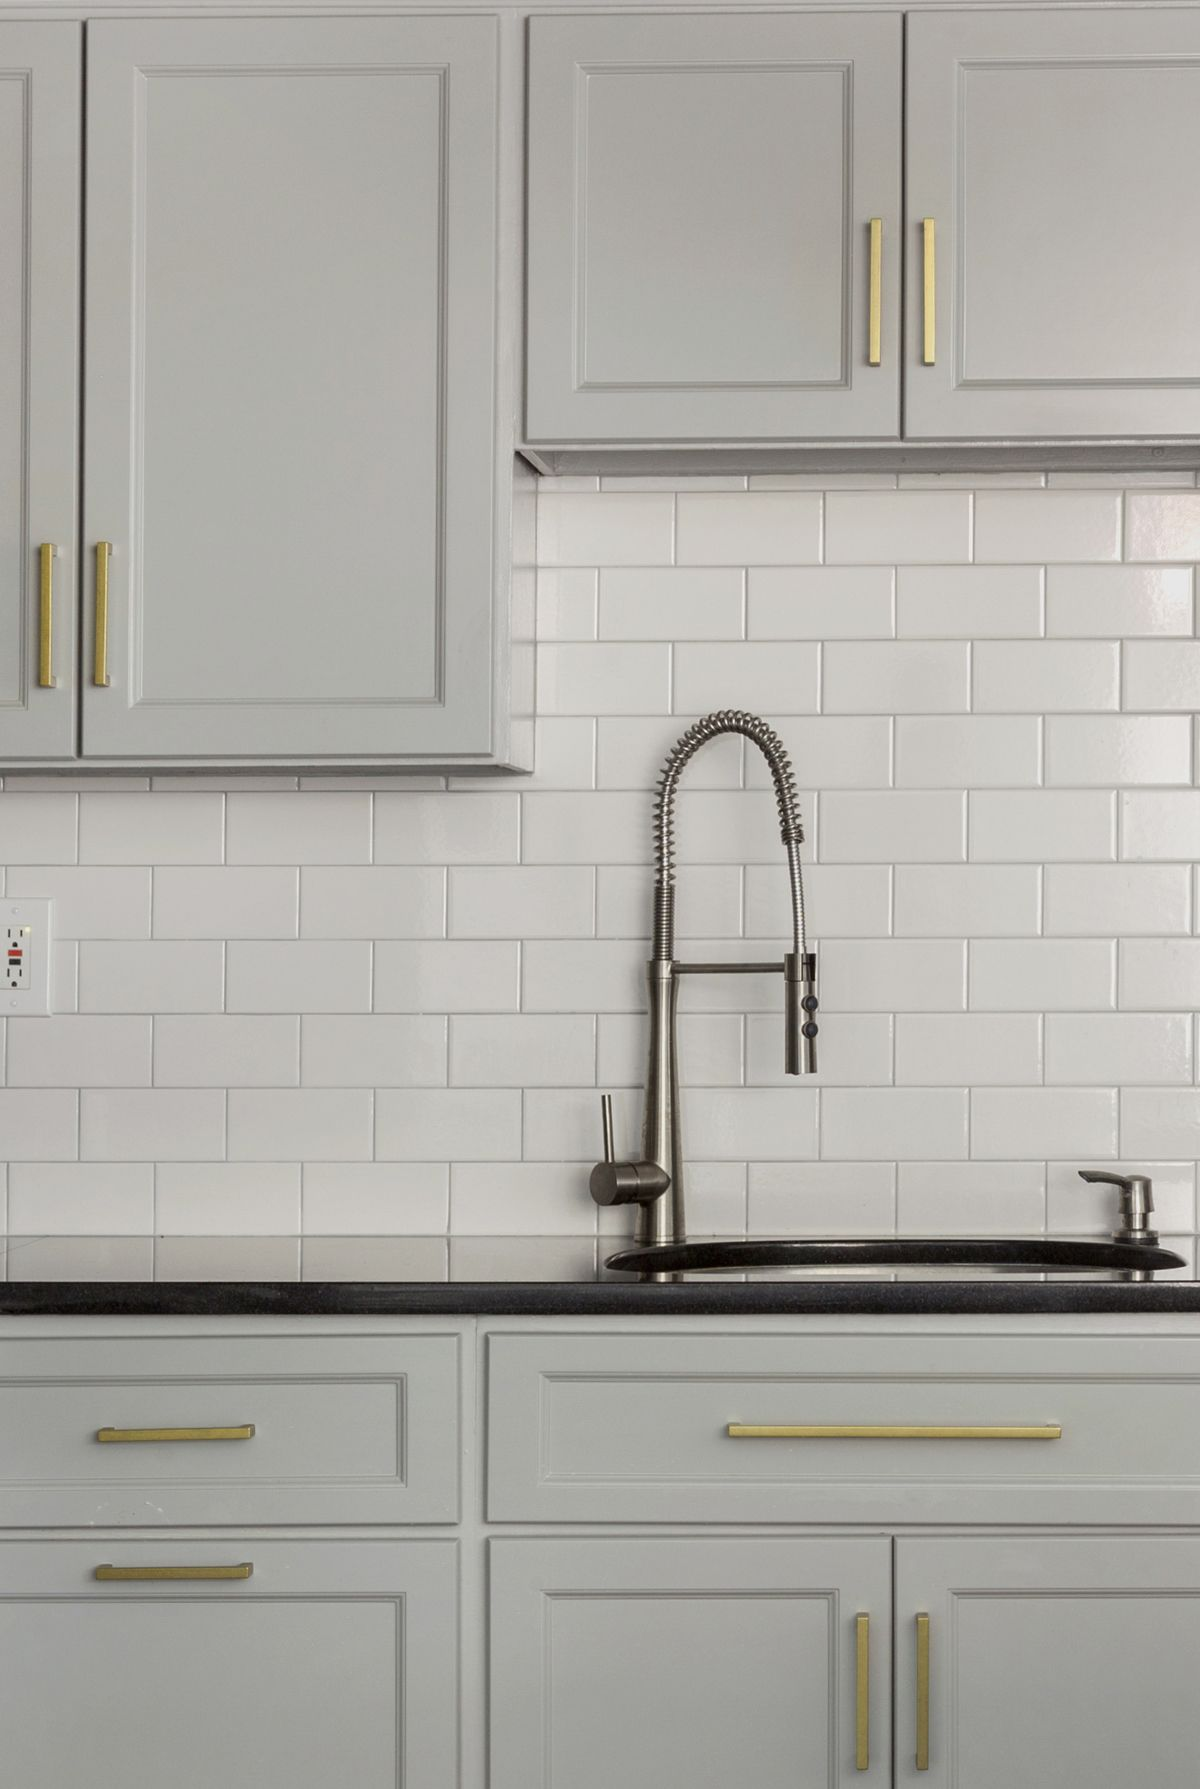 Brass modern cabinet hardware gray cabinets black countertop white subway tile design manifest